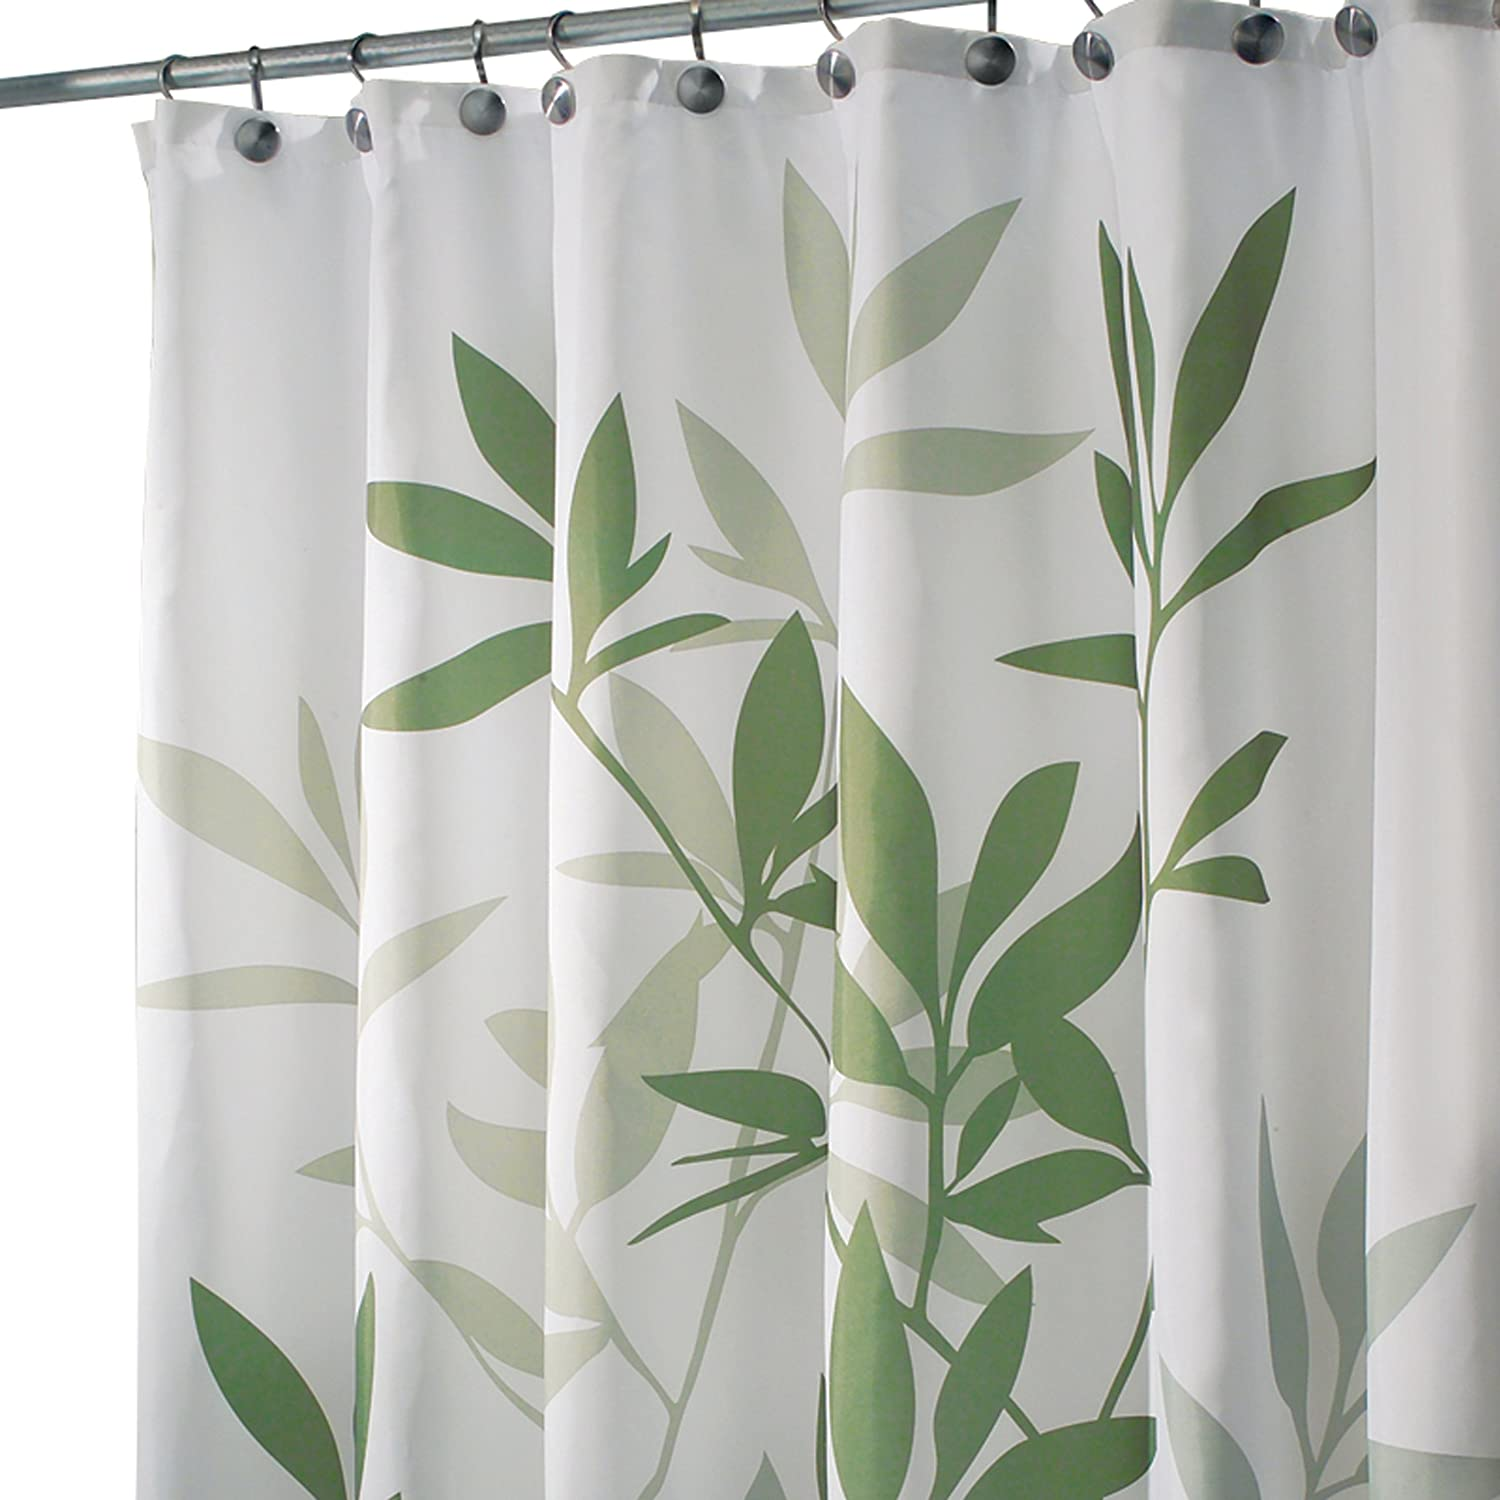 Interdesign Leaves Long Shower Curtain Green 72 Inch By